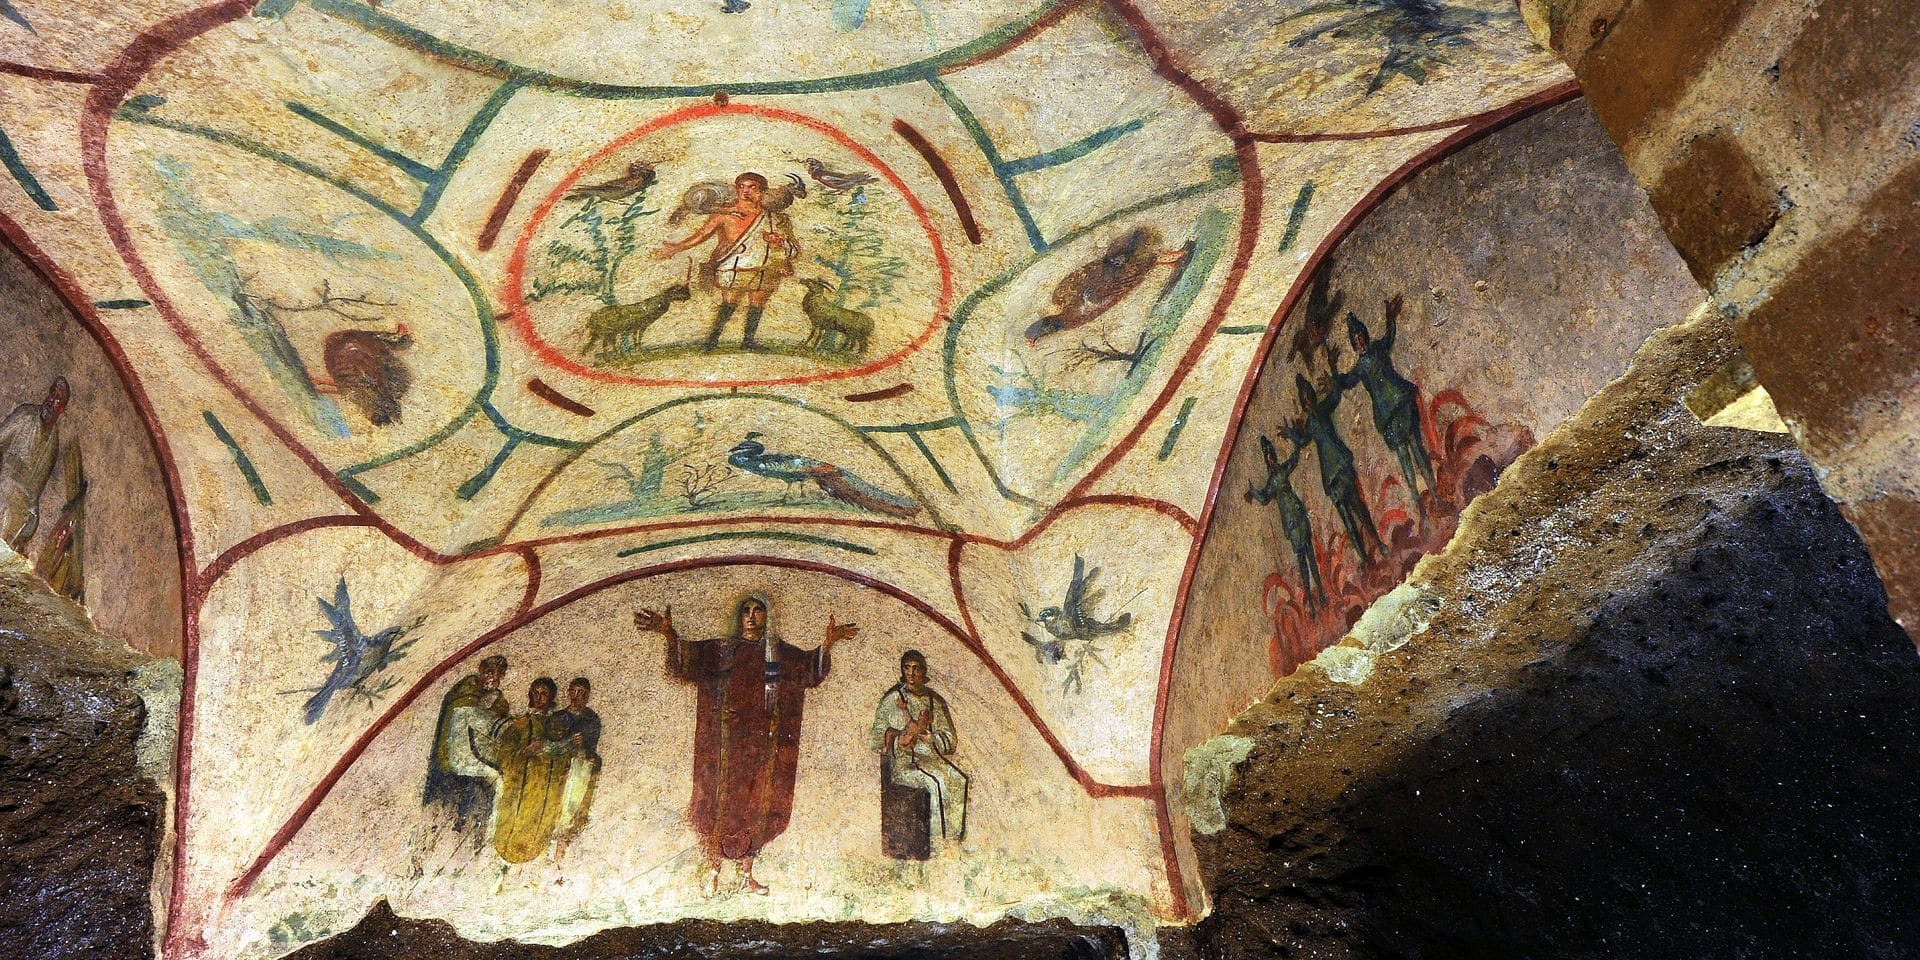 View of a frescoe said by some to show woman priest in the early Christian church in the Catacombs of Priscilla in Rome, Italy on May 2014. After years of restoration, the Vatican a few months ago unveiled the new frescoes in the Catacombs of Priscilla, Rome. The catacombs were used for early Christians burials from the late 2nd - 4th Century. The labyrinthine cemetery complex stretching for 13 kilometers over several levels underneath northern Rome is known as the 'Queen of the catacombs' because it features burial chambers of popes and a tiny, delicate fresco of the Madonna nursing Jesus dating from around 230-240 A.D., the earliest known image of the Madonna and Child. More controversially, the catacomb tour features two scenes said by proponents of the women's ordination movement to show women priests: One in the ochre-hued Greek Chapel features a group of women celebrating a banquet, said to be the banquet of the Eucharist. Another fresco in a richly decorated burial chamber features a woman, dressed in a dalmatic ? a cassock-like robe ? with her hands up in the position used by priests for public worship. The Association of Roman Catholic Women Priests holds the images up as evidence that there were women priests in the early Christian church ? and that therefore there should be women priests today. But the Vatican has dismissed them as pure 'fable, a legend'. Lost for centuries after its entrances were sealed in ancient time, the catacombs were re-discovered in the 16th century and plundered of many gravestones, sarcophagi and bodies. Excavations in modern times began in the 19th century. The museum presents 700 fragments of finely sculpted marble sarcophaguses that were discovered buried in the catacombs of Priscilla in 1890. The Priscilla catacombs are being featured in a novel blending of antiquity and modern-technology: For the first time, Google Maps has gone into the Roman catacombs, providing a virtual tour of the Priscilla complex available to anyon